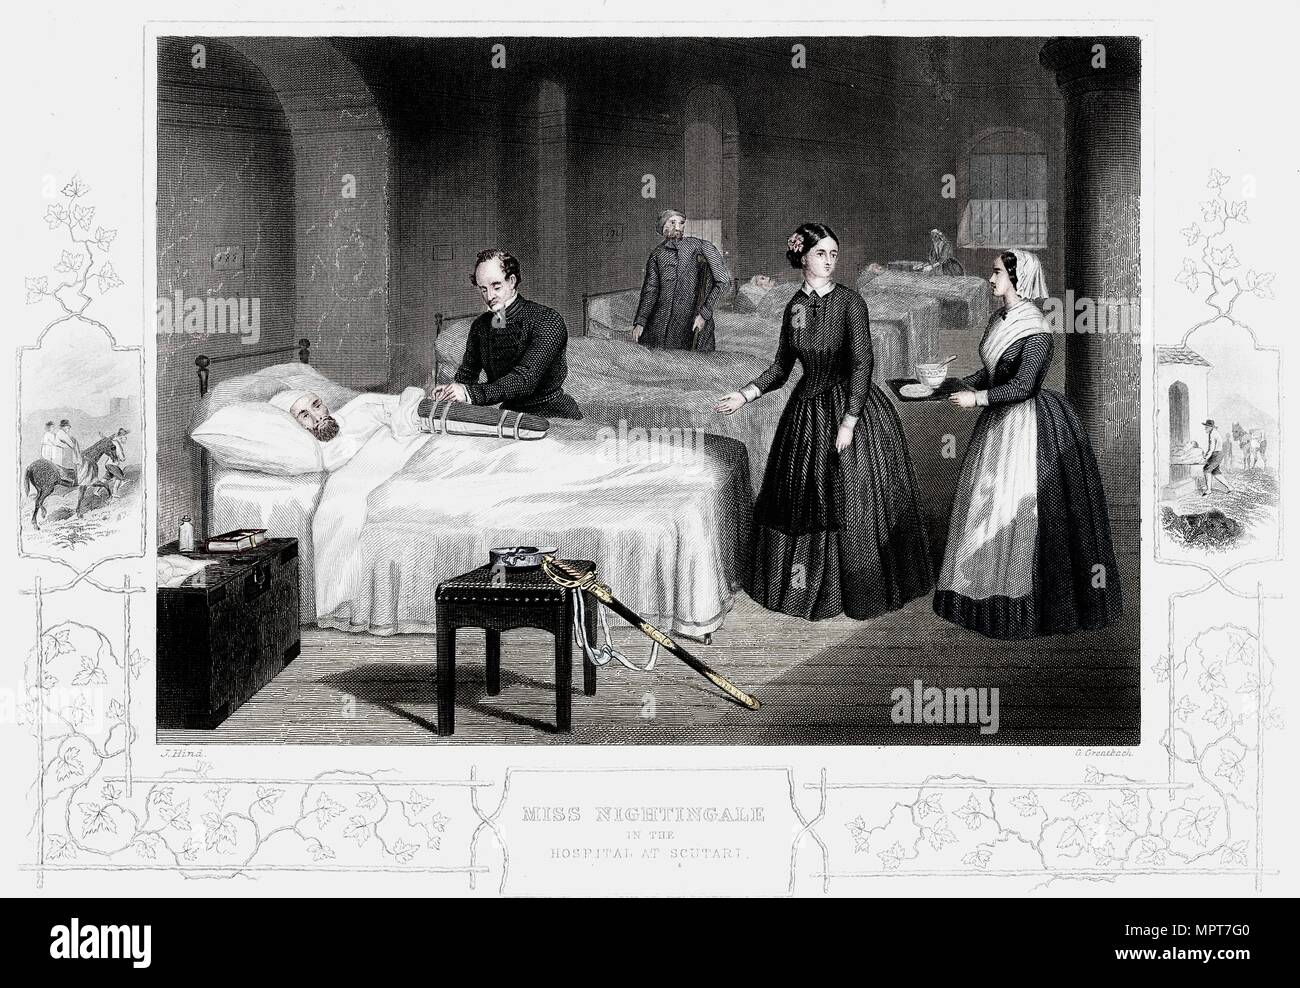 Florence Nightingale in the hospital at Scutari, c1860. Artist: Anon. - Stock Image